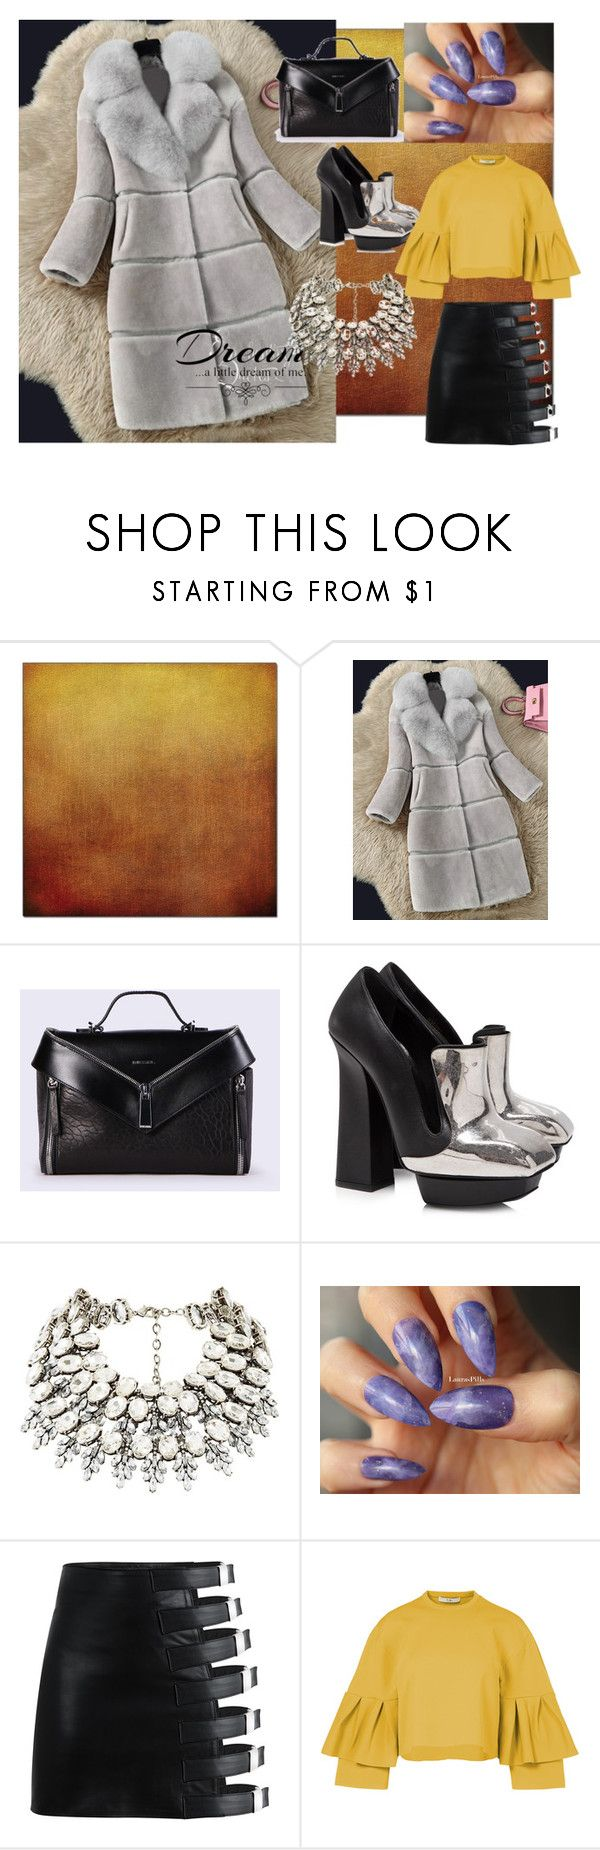 """""""Statement COAT!"""" by nela-queen ❤ liked on Polyvore featuring Diesel, Alexander McQueen, Love Quotes Scarves and TIBI"""